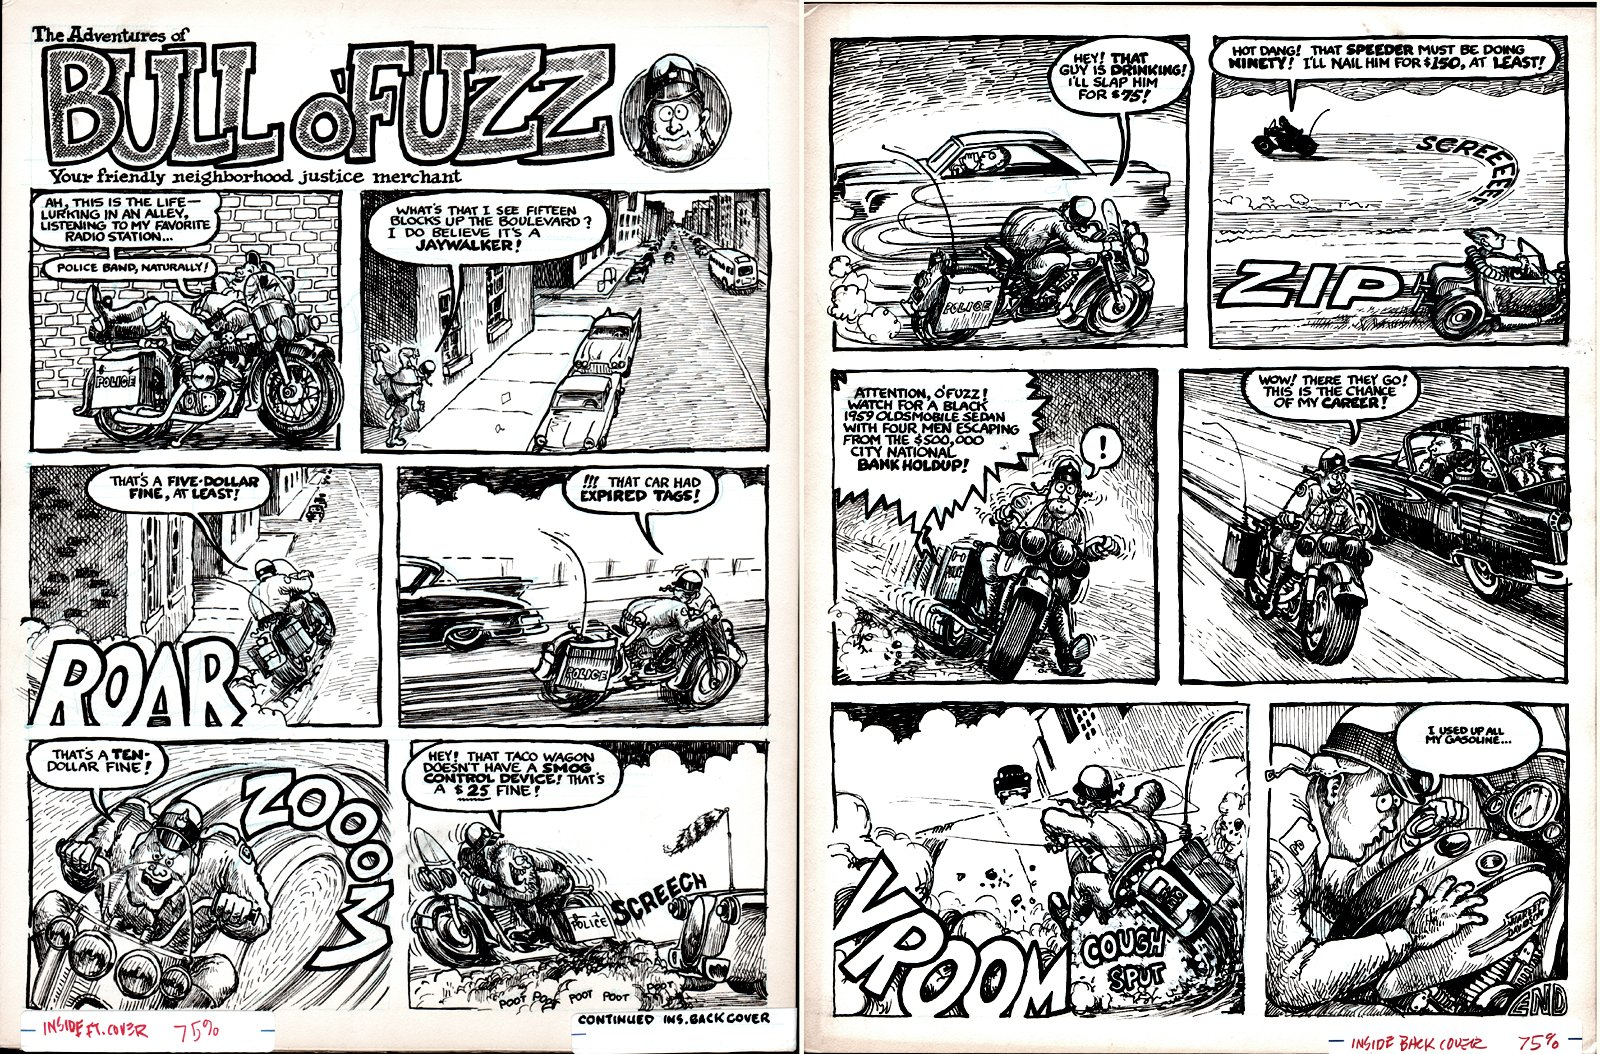 Drag Cartoons - Bull O Fuzz 2 Inside Front & Back Cover Complete Story (1960s)